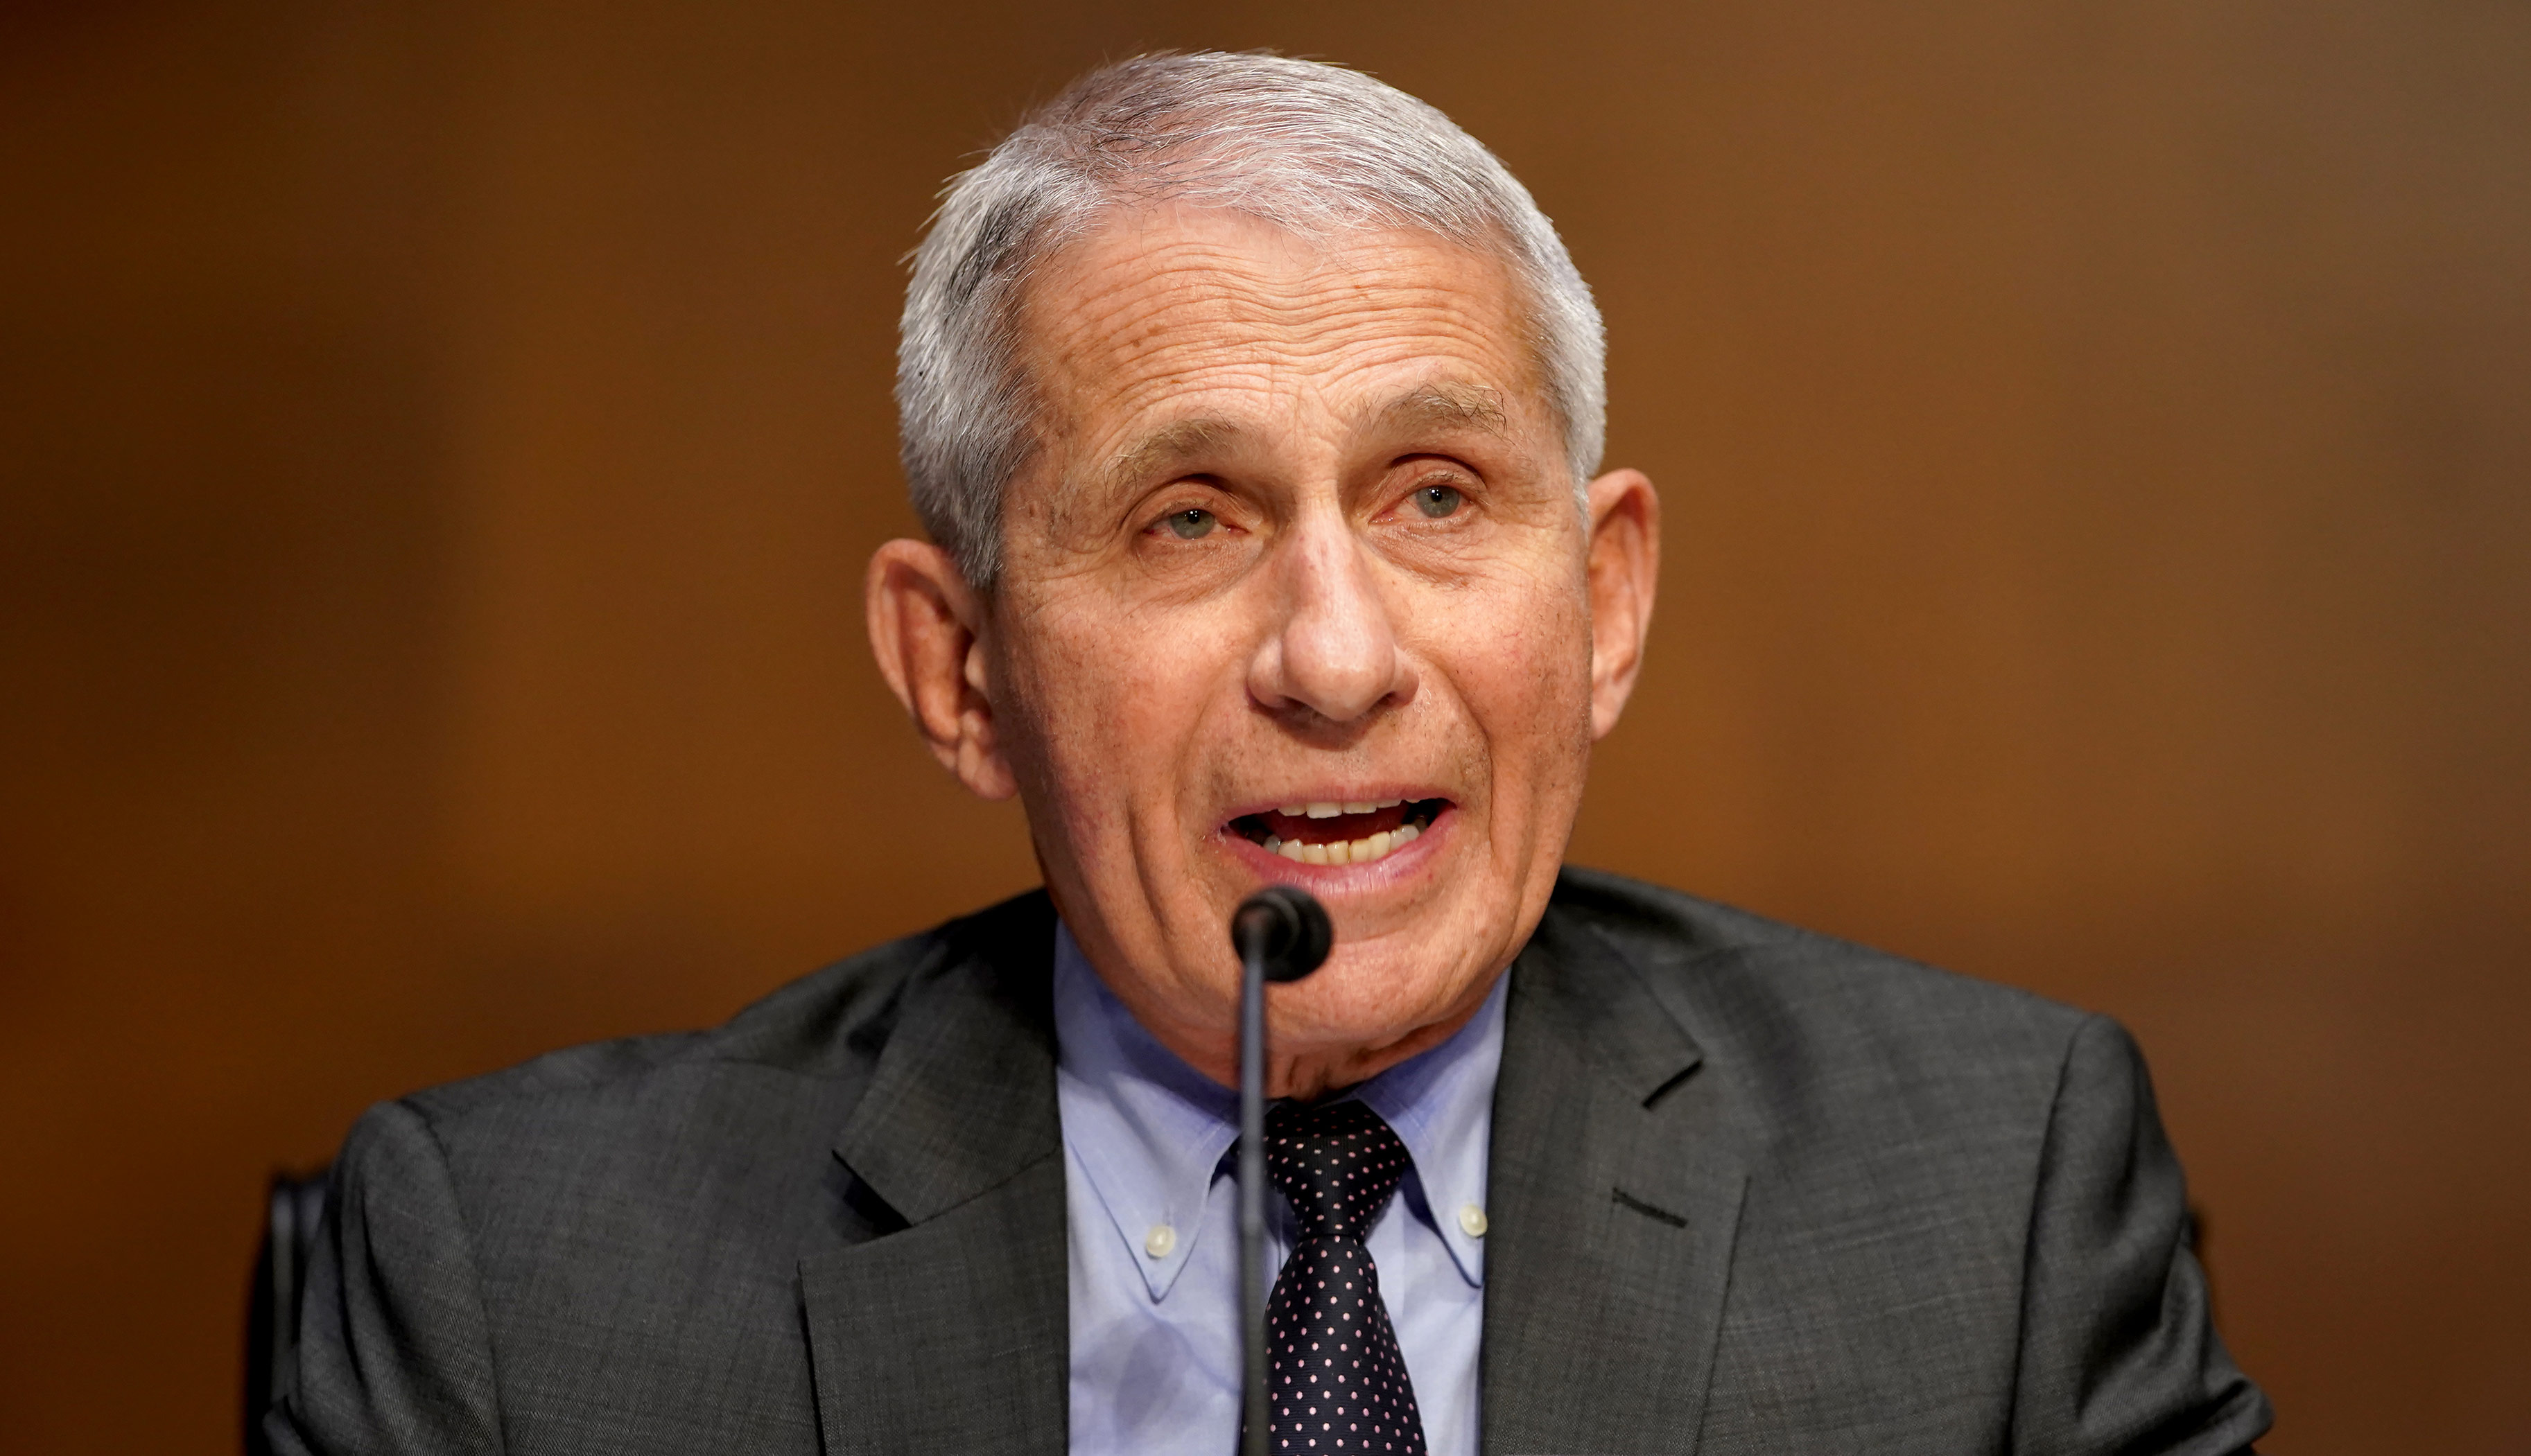 Dr. Anthony Fauci, director of the National Institute of Allergy and Infectious Diseases, gives an opening statement during a hearing on May 11 in Washington, DC.